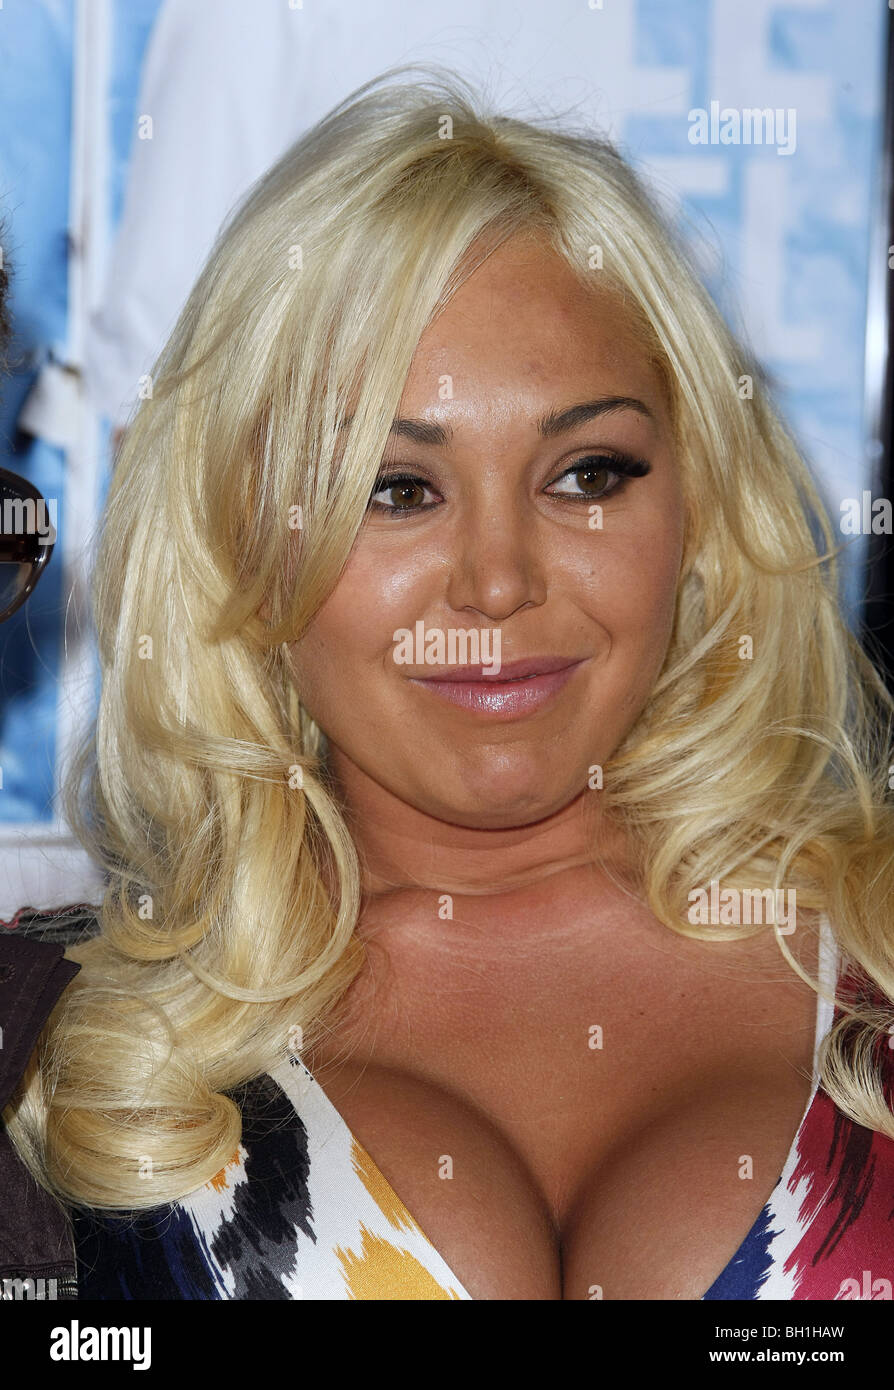 Watch Mary Carey (actress) video